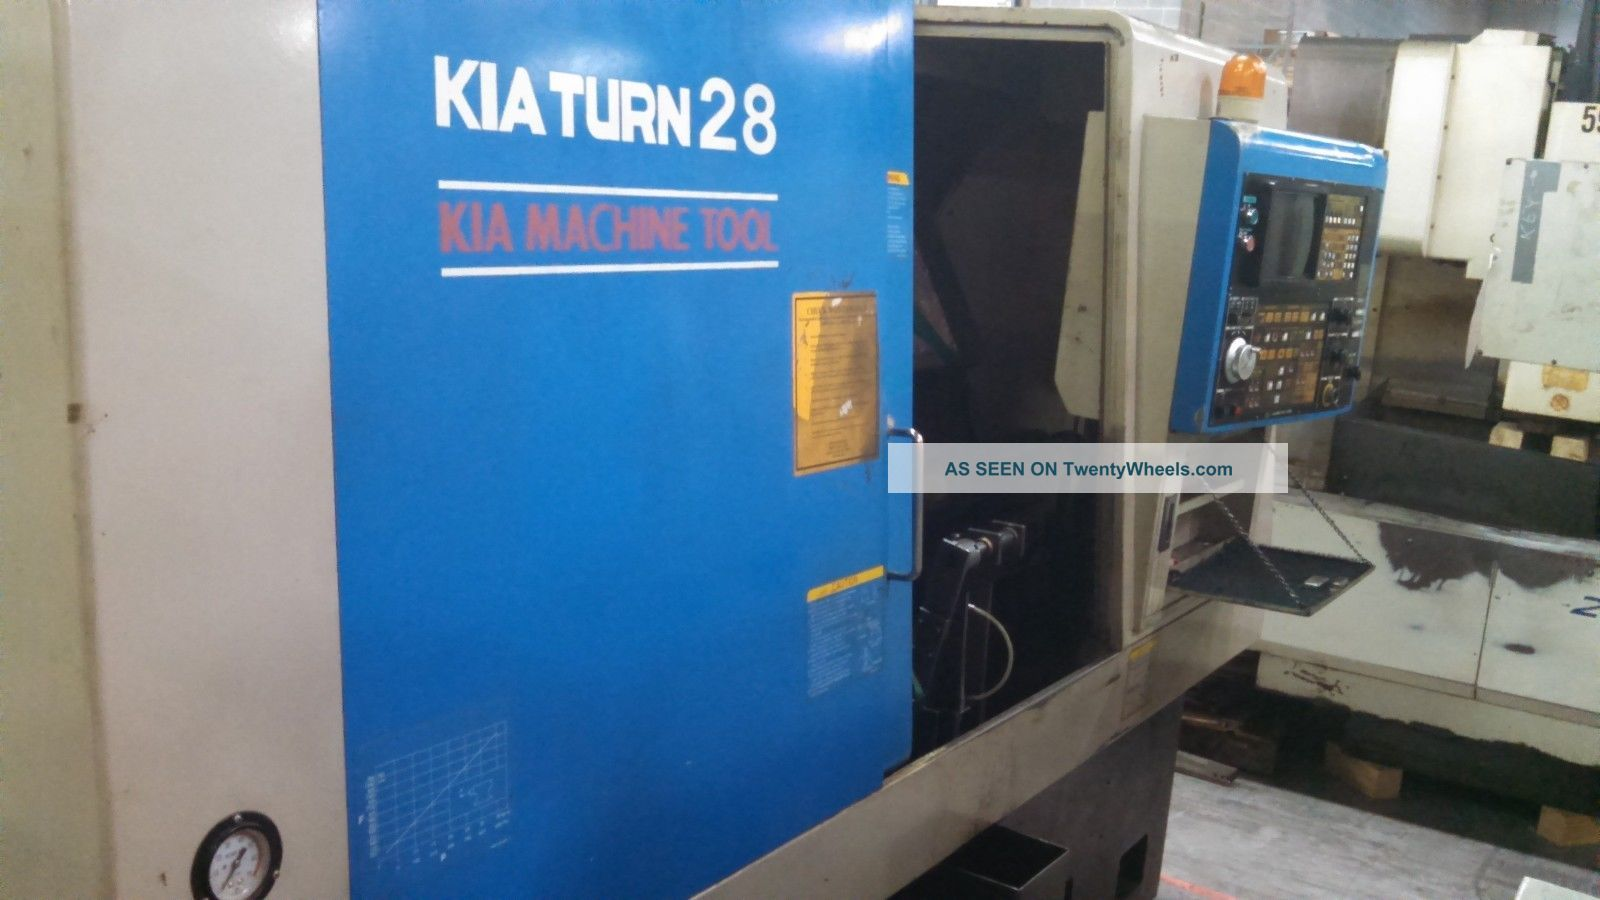 1996 Kia Turn 28 Cnc Turning Center Lathe Yasnac Lx - 3 10